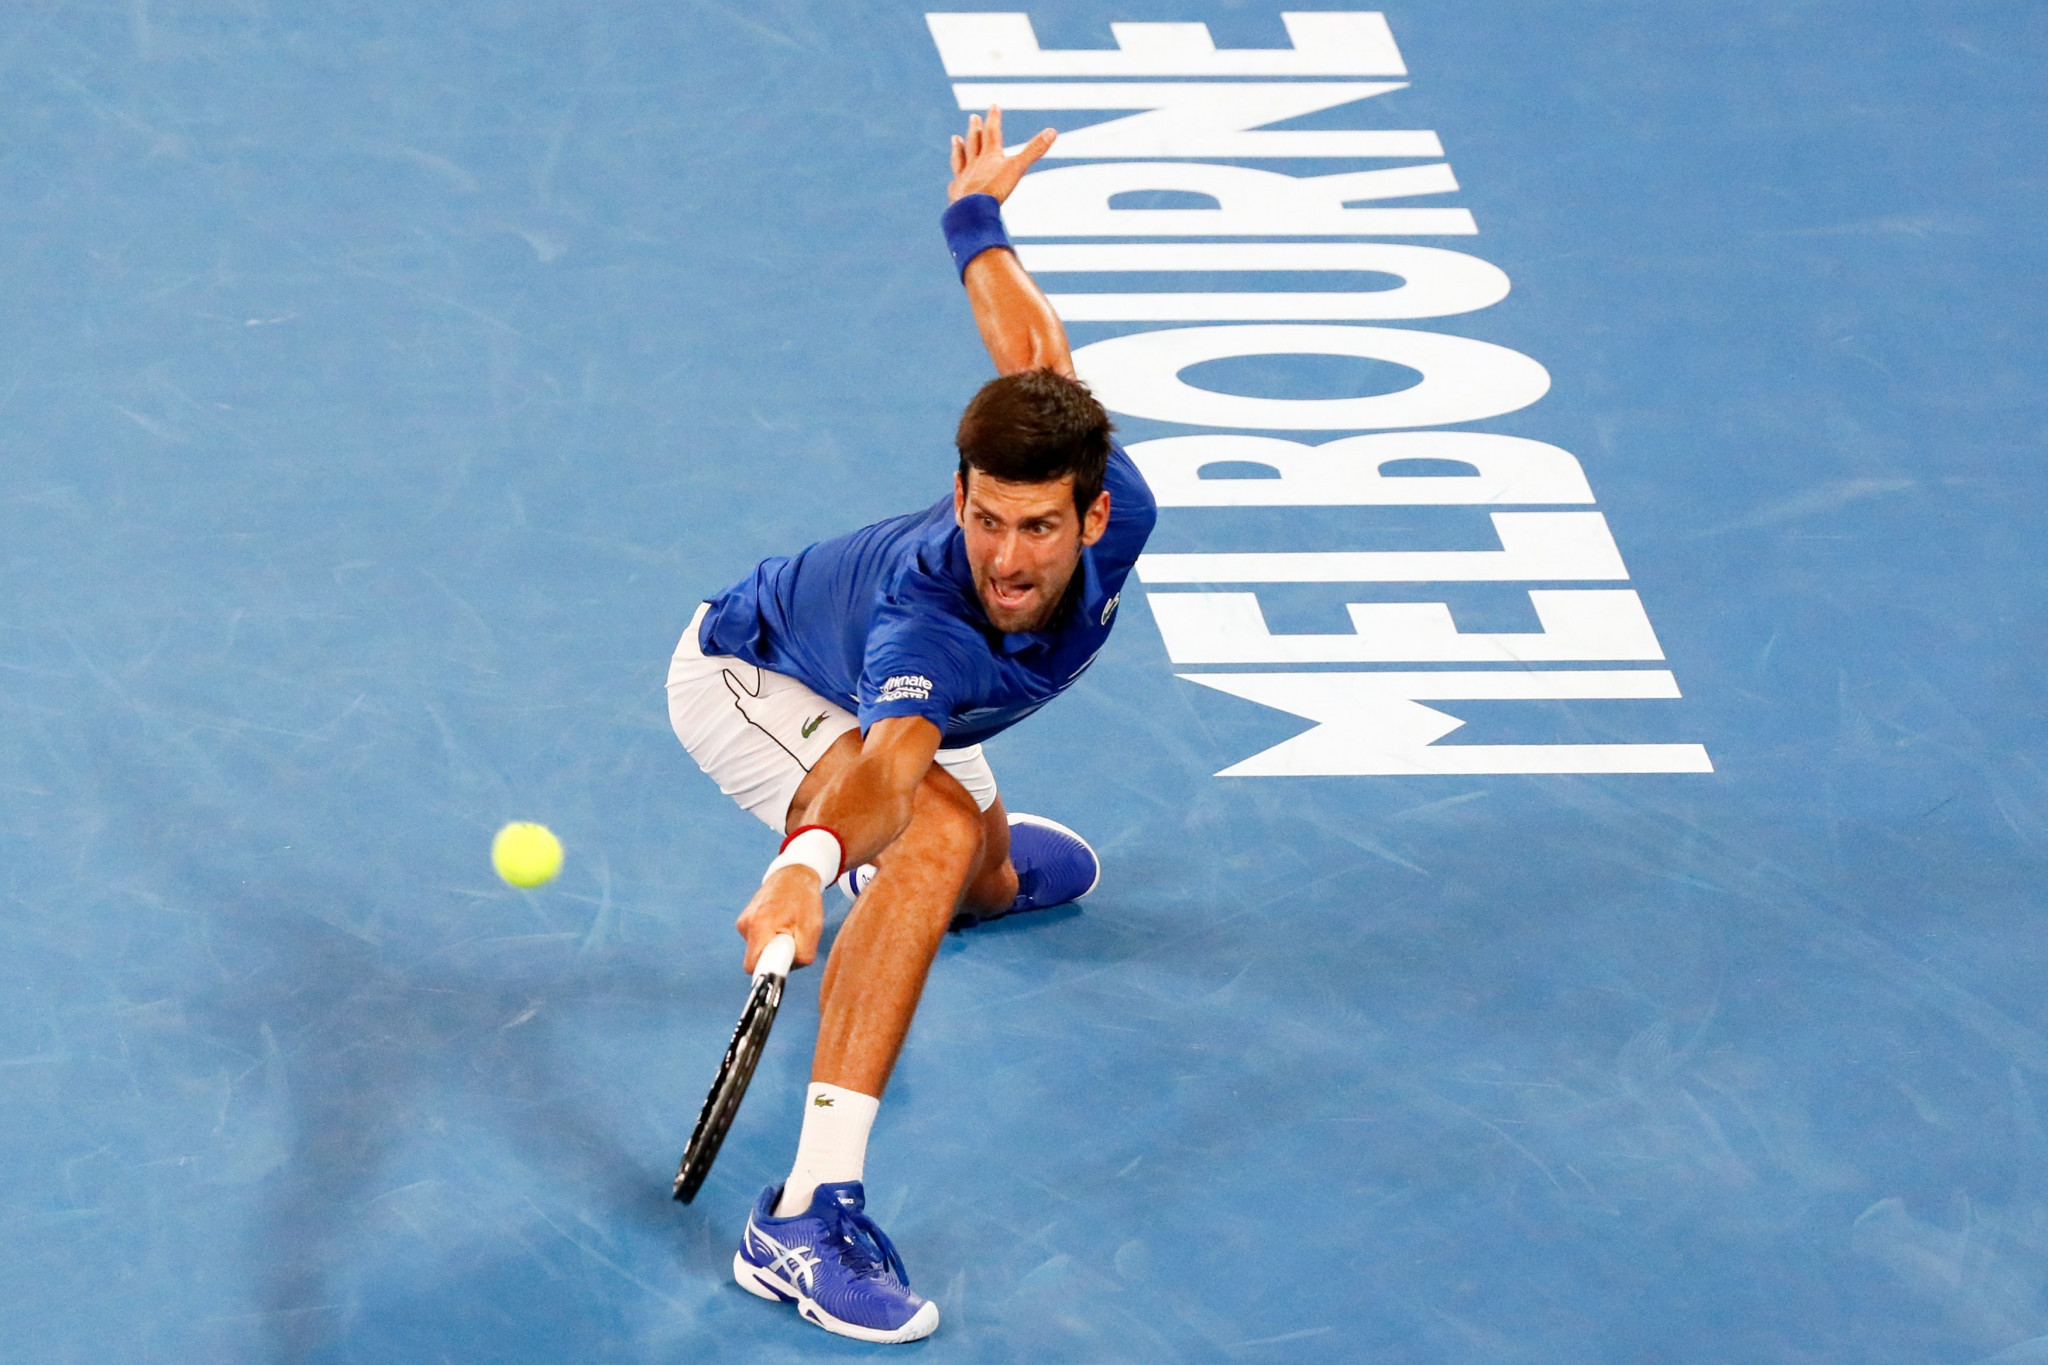 World number one Novak Djokovic eased into the third round of the men's singles draw ©Getty Images